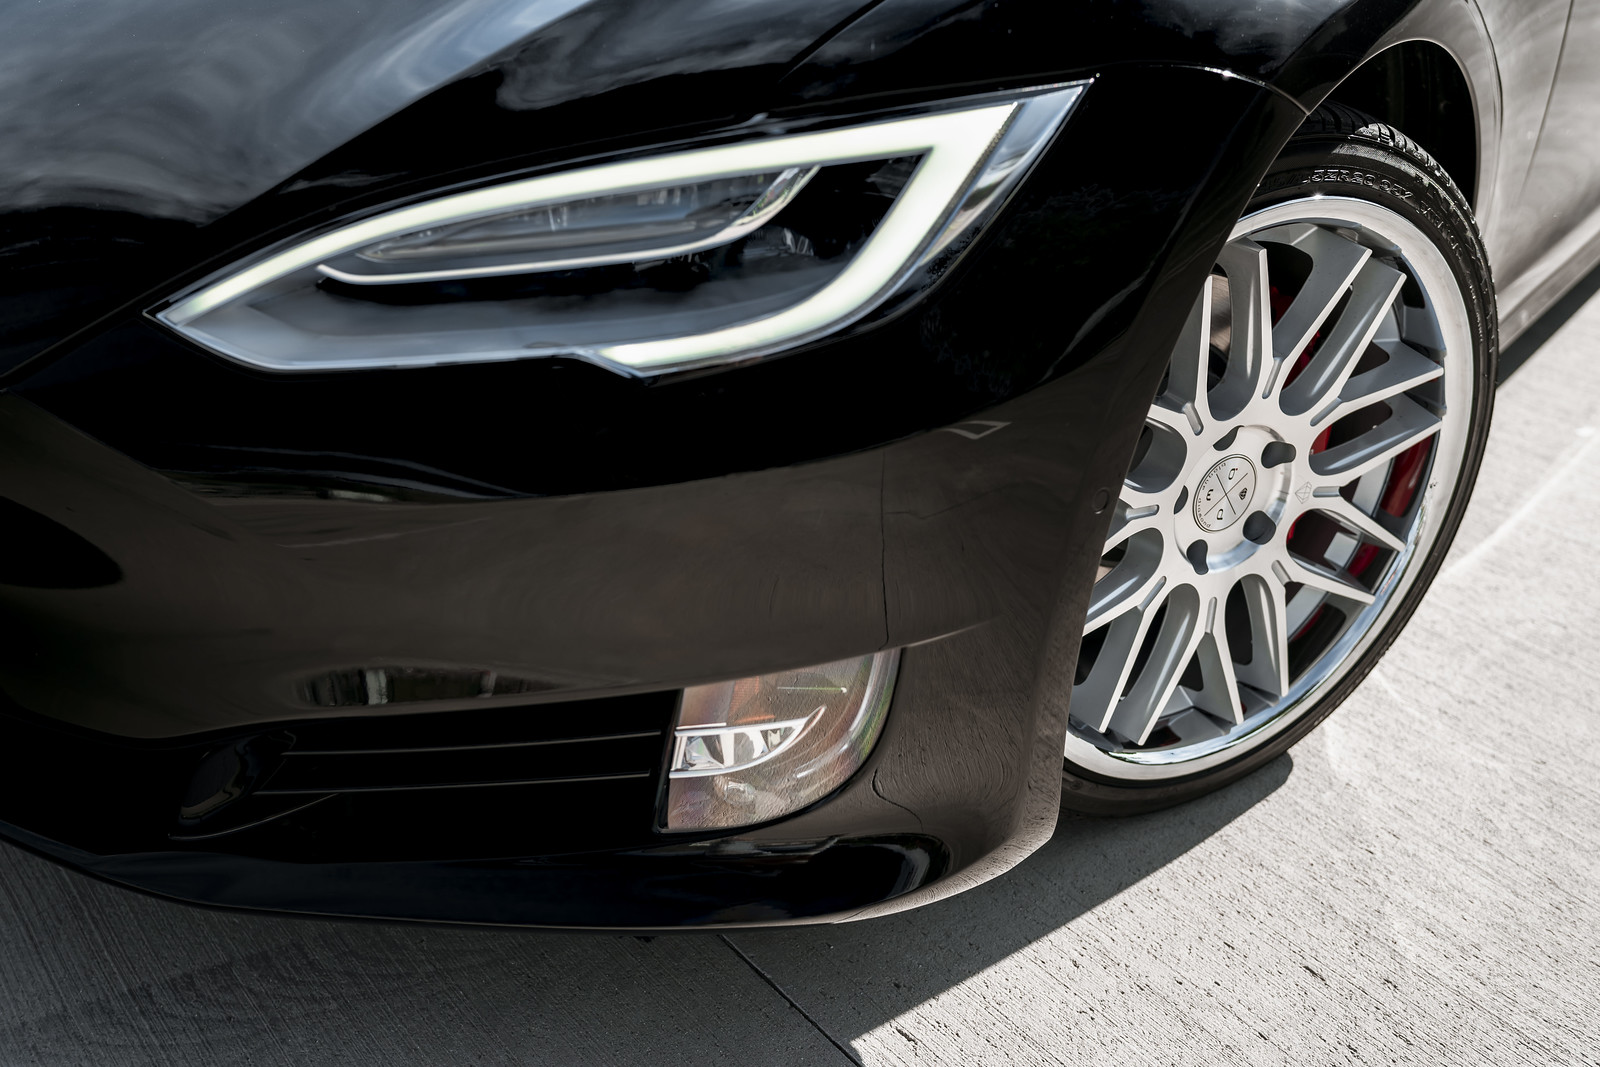 2020_Tesla_Model_S_BD27_Silver_Machined_Face_Chrome_SS_Lip_2